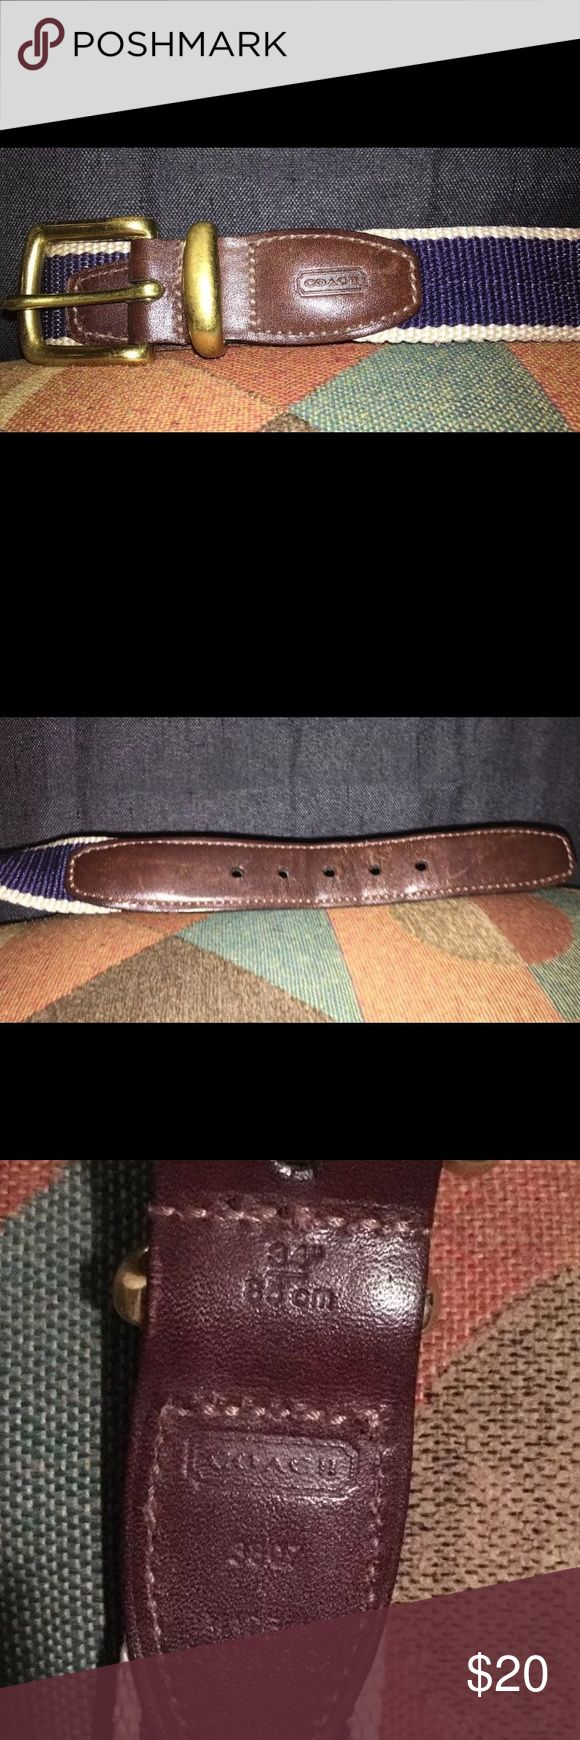 Coach belt Small coach belt ladies lightly used Coach Accessories Belts